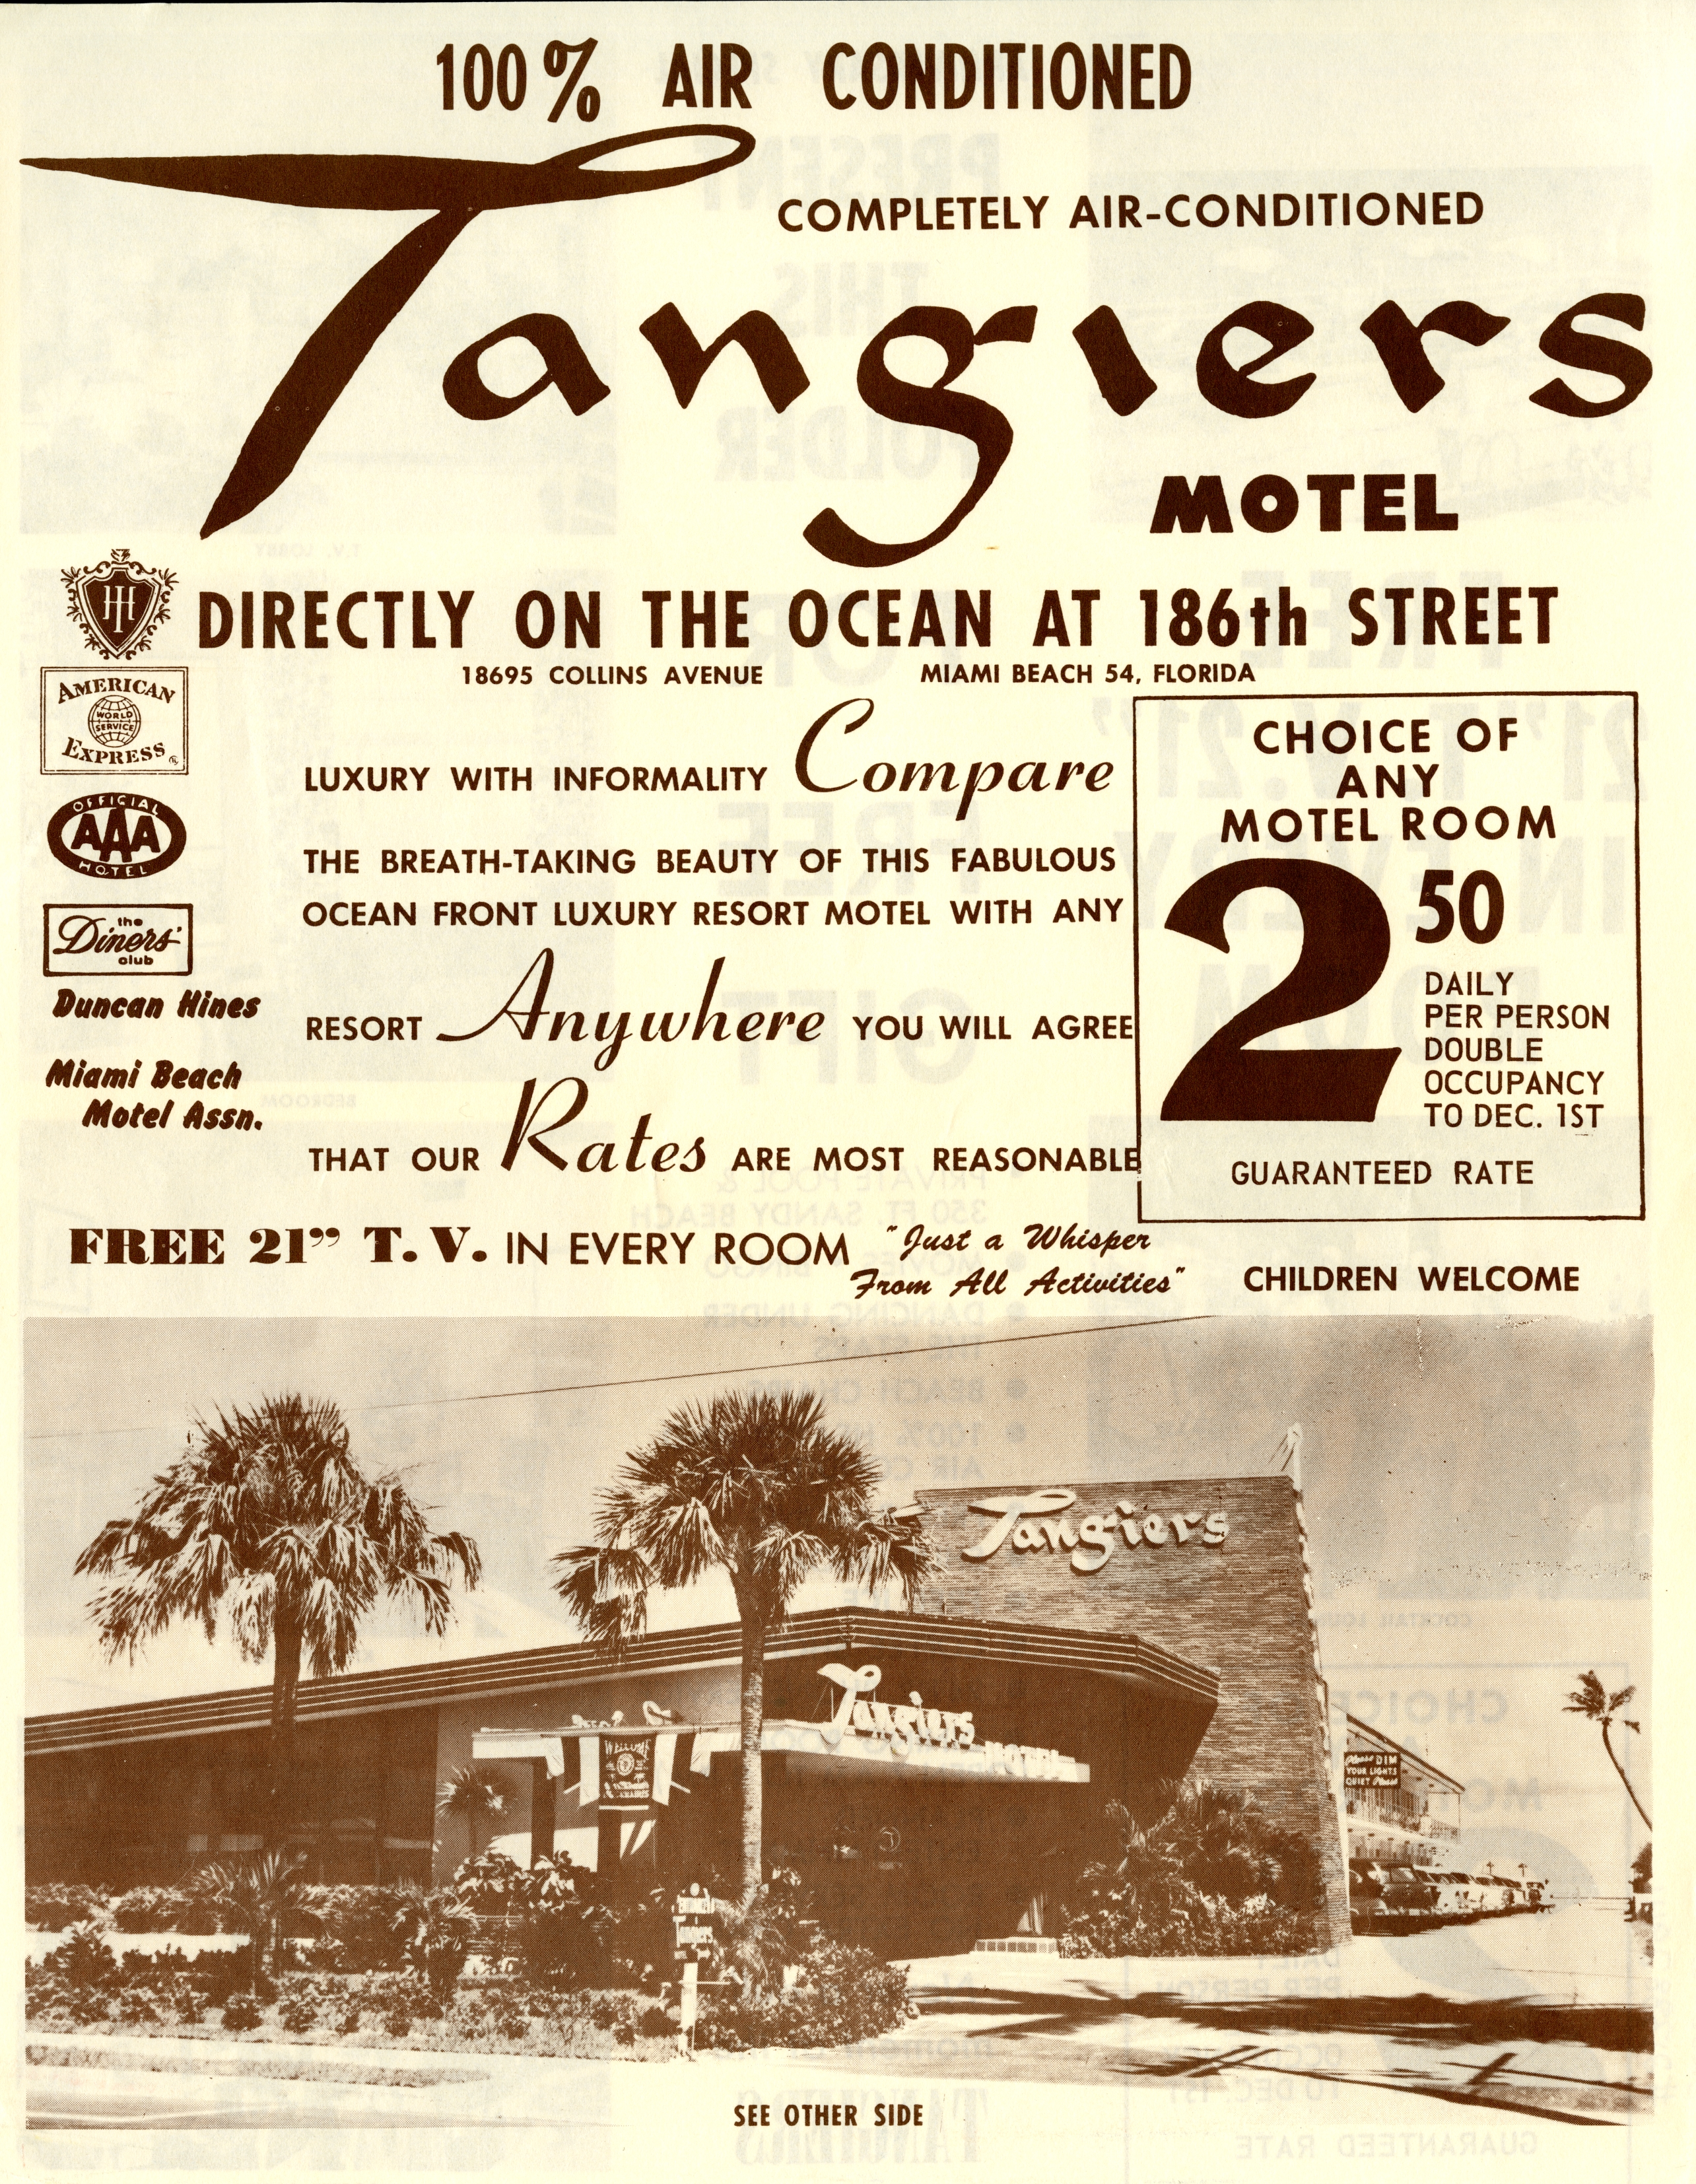 Tangiers Motel, Miami Beach, Florida.